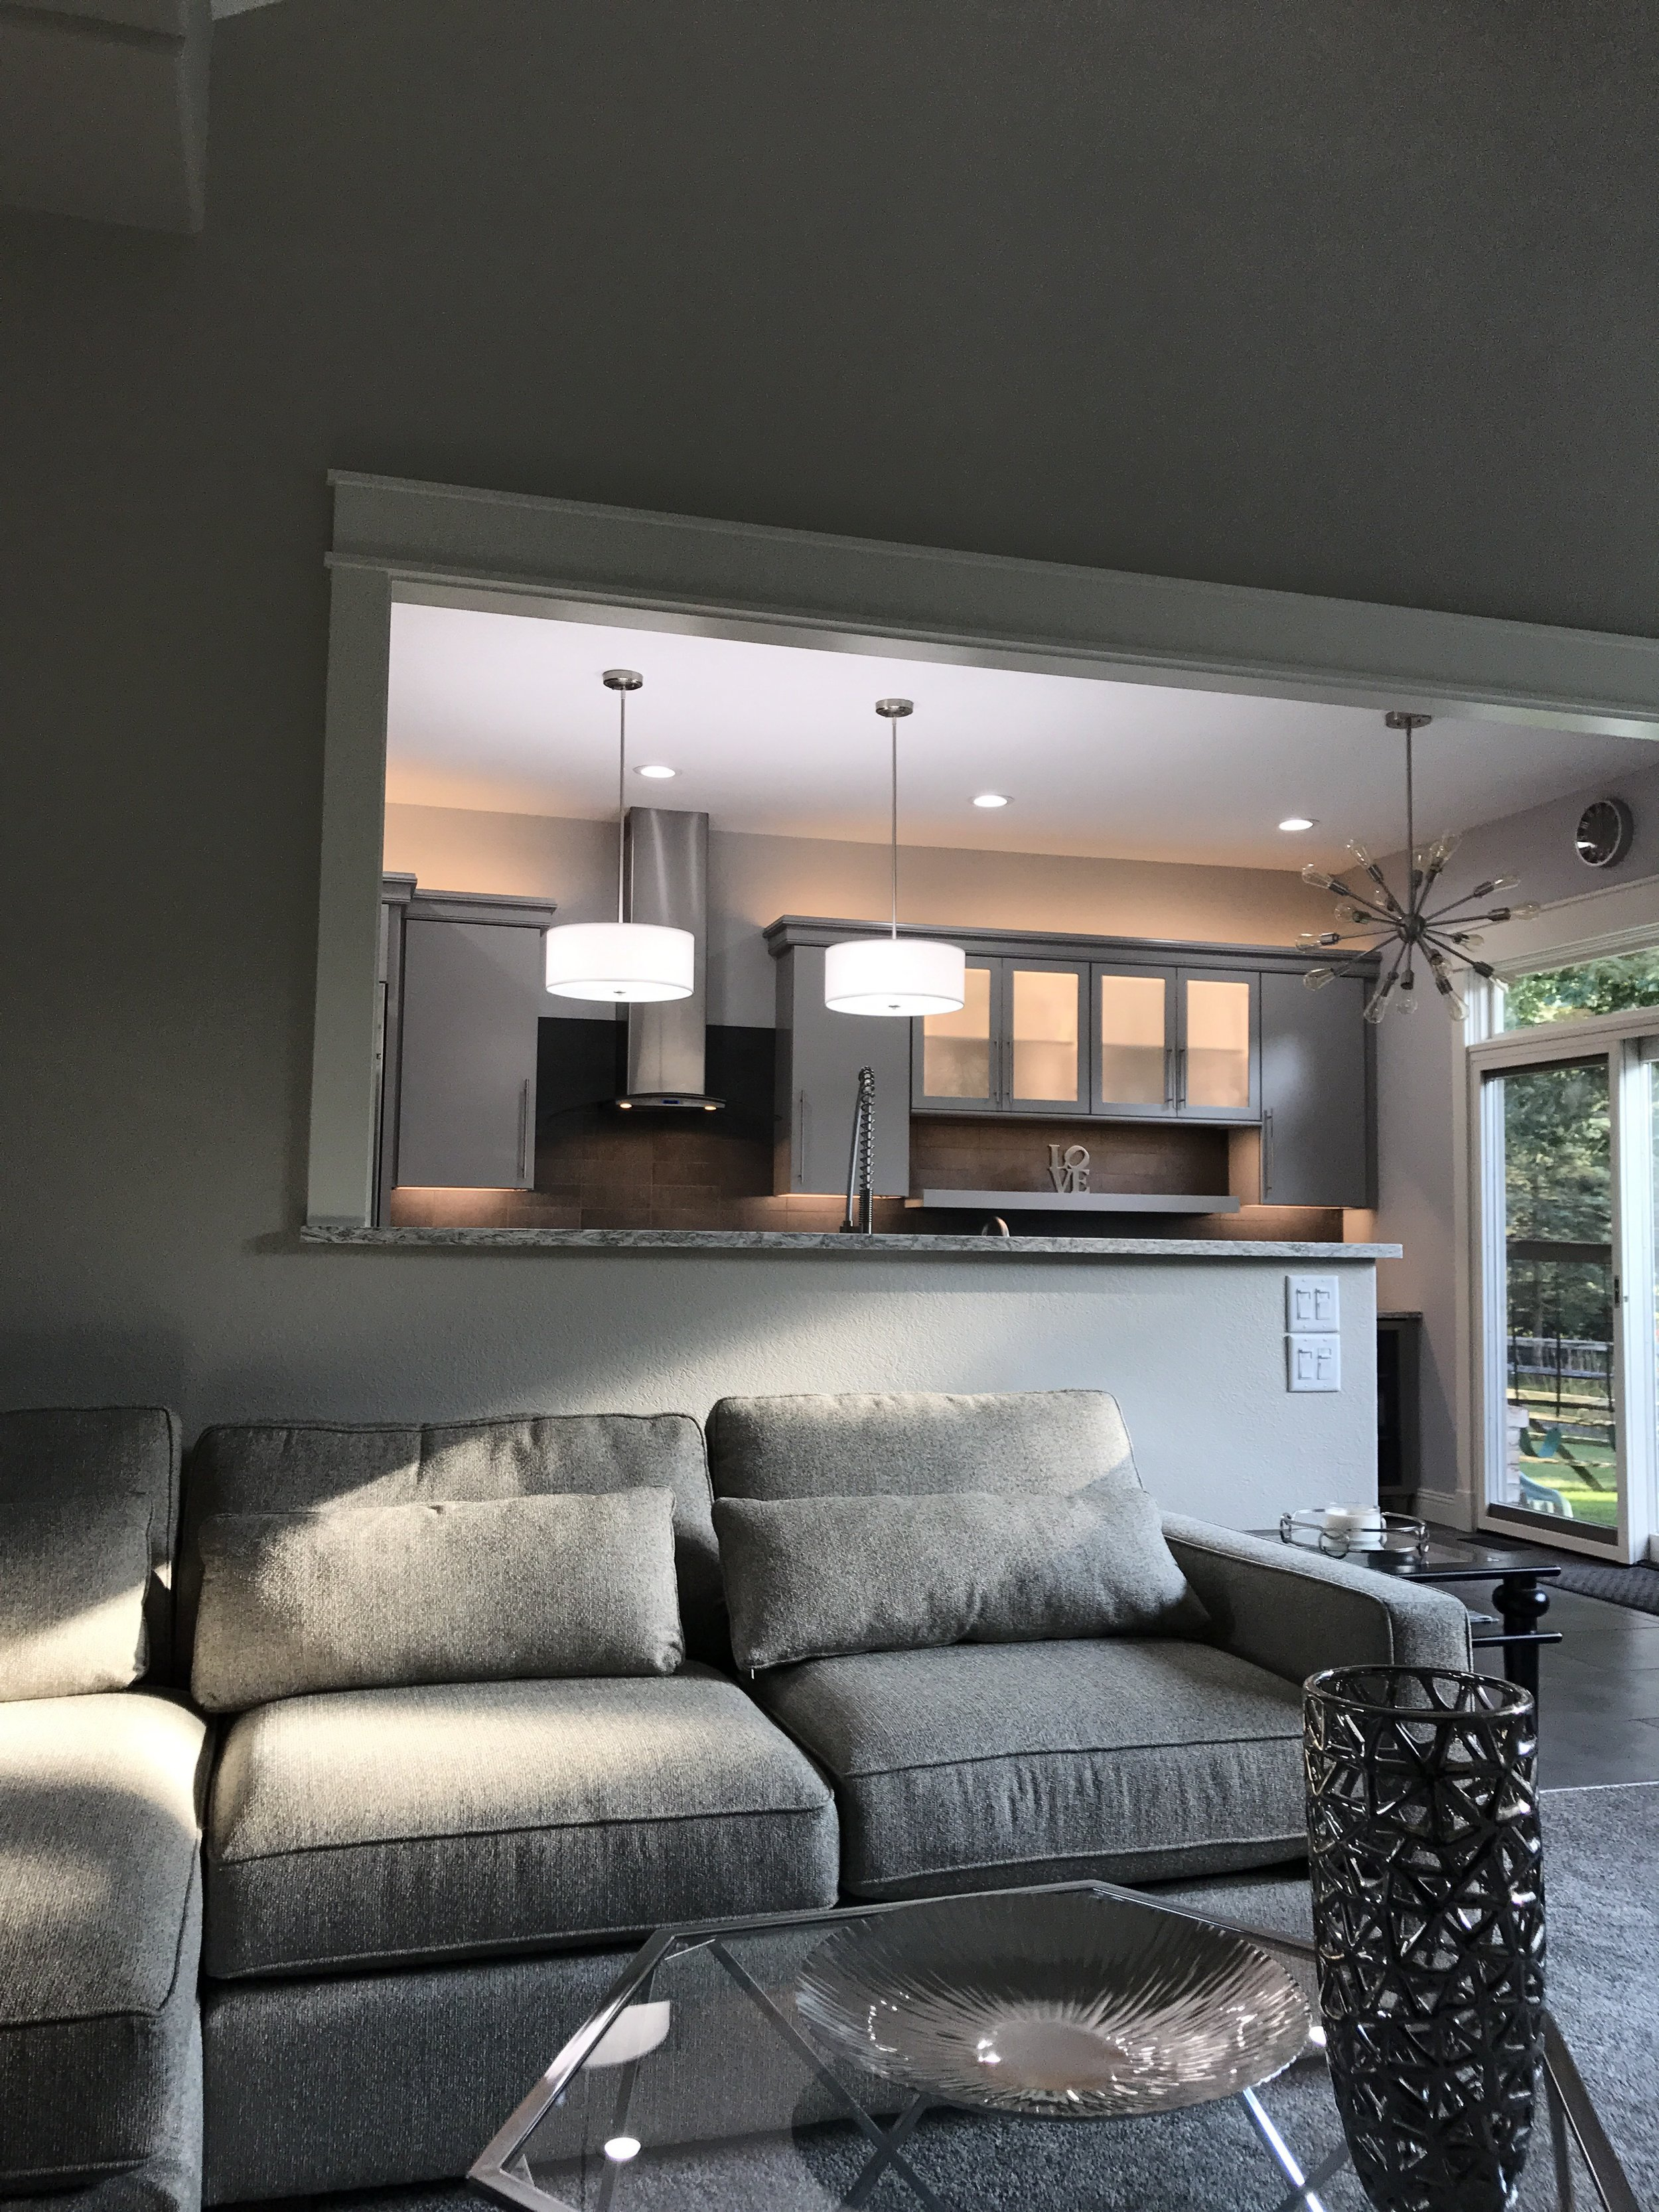 AFTER-Opening up the wall creates a perfect space for entertaining